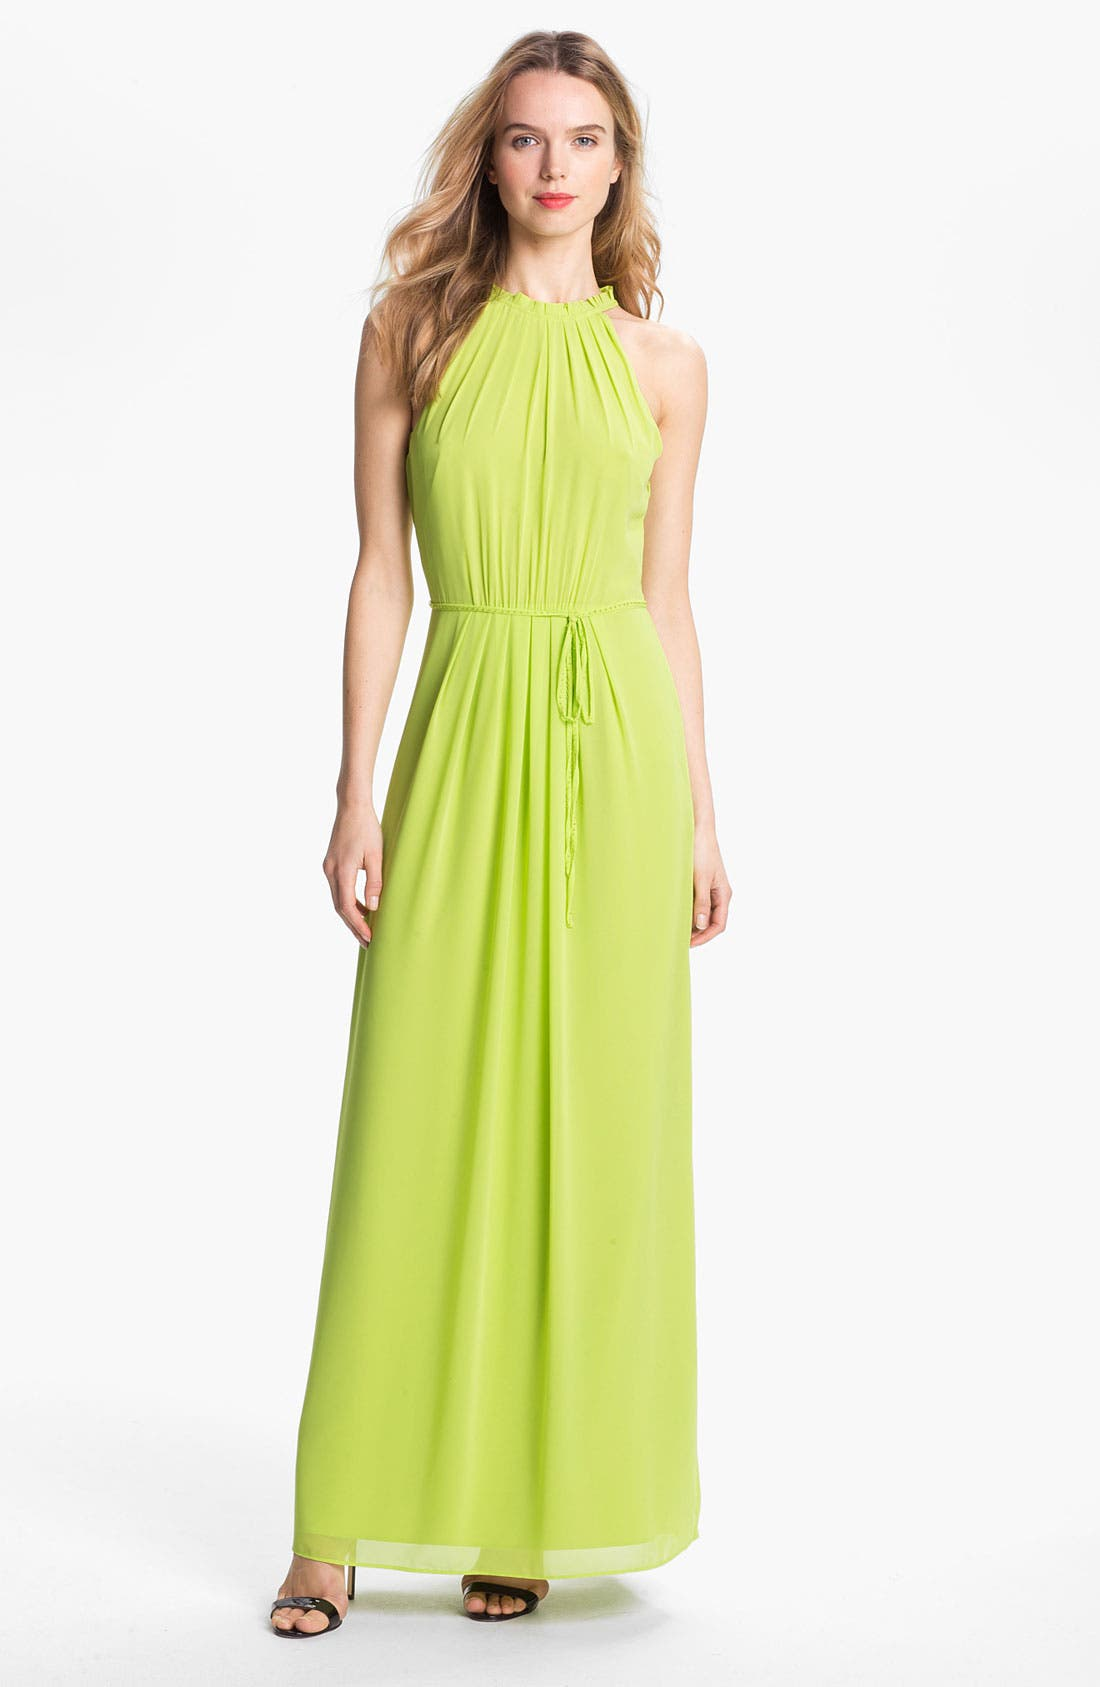 Alternate Image 1 Selected - Ted Baker London Halter Maxi Dress (Online Only)